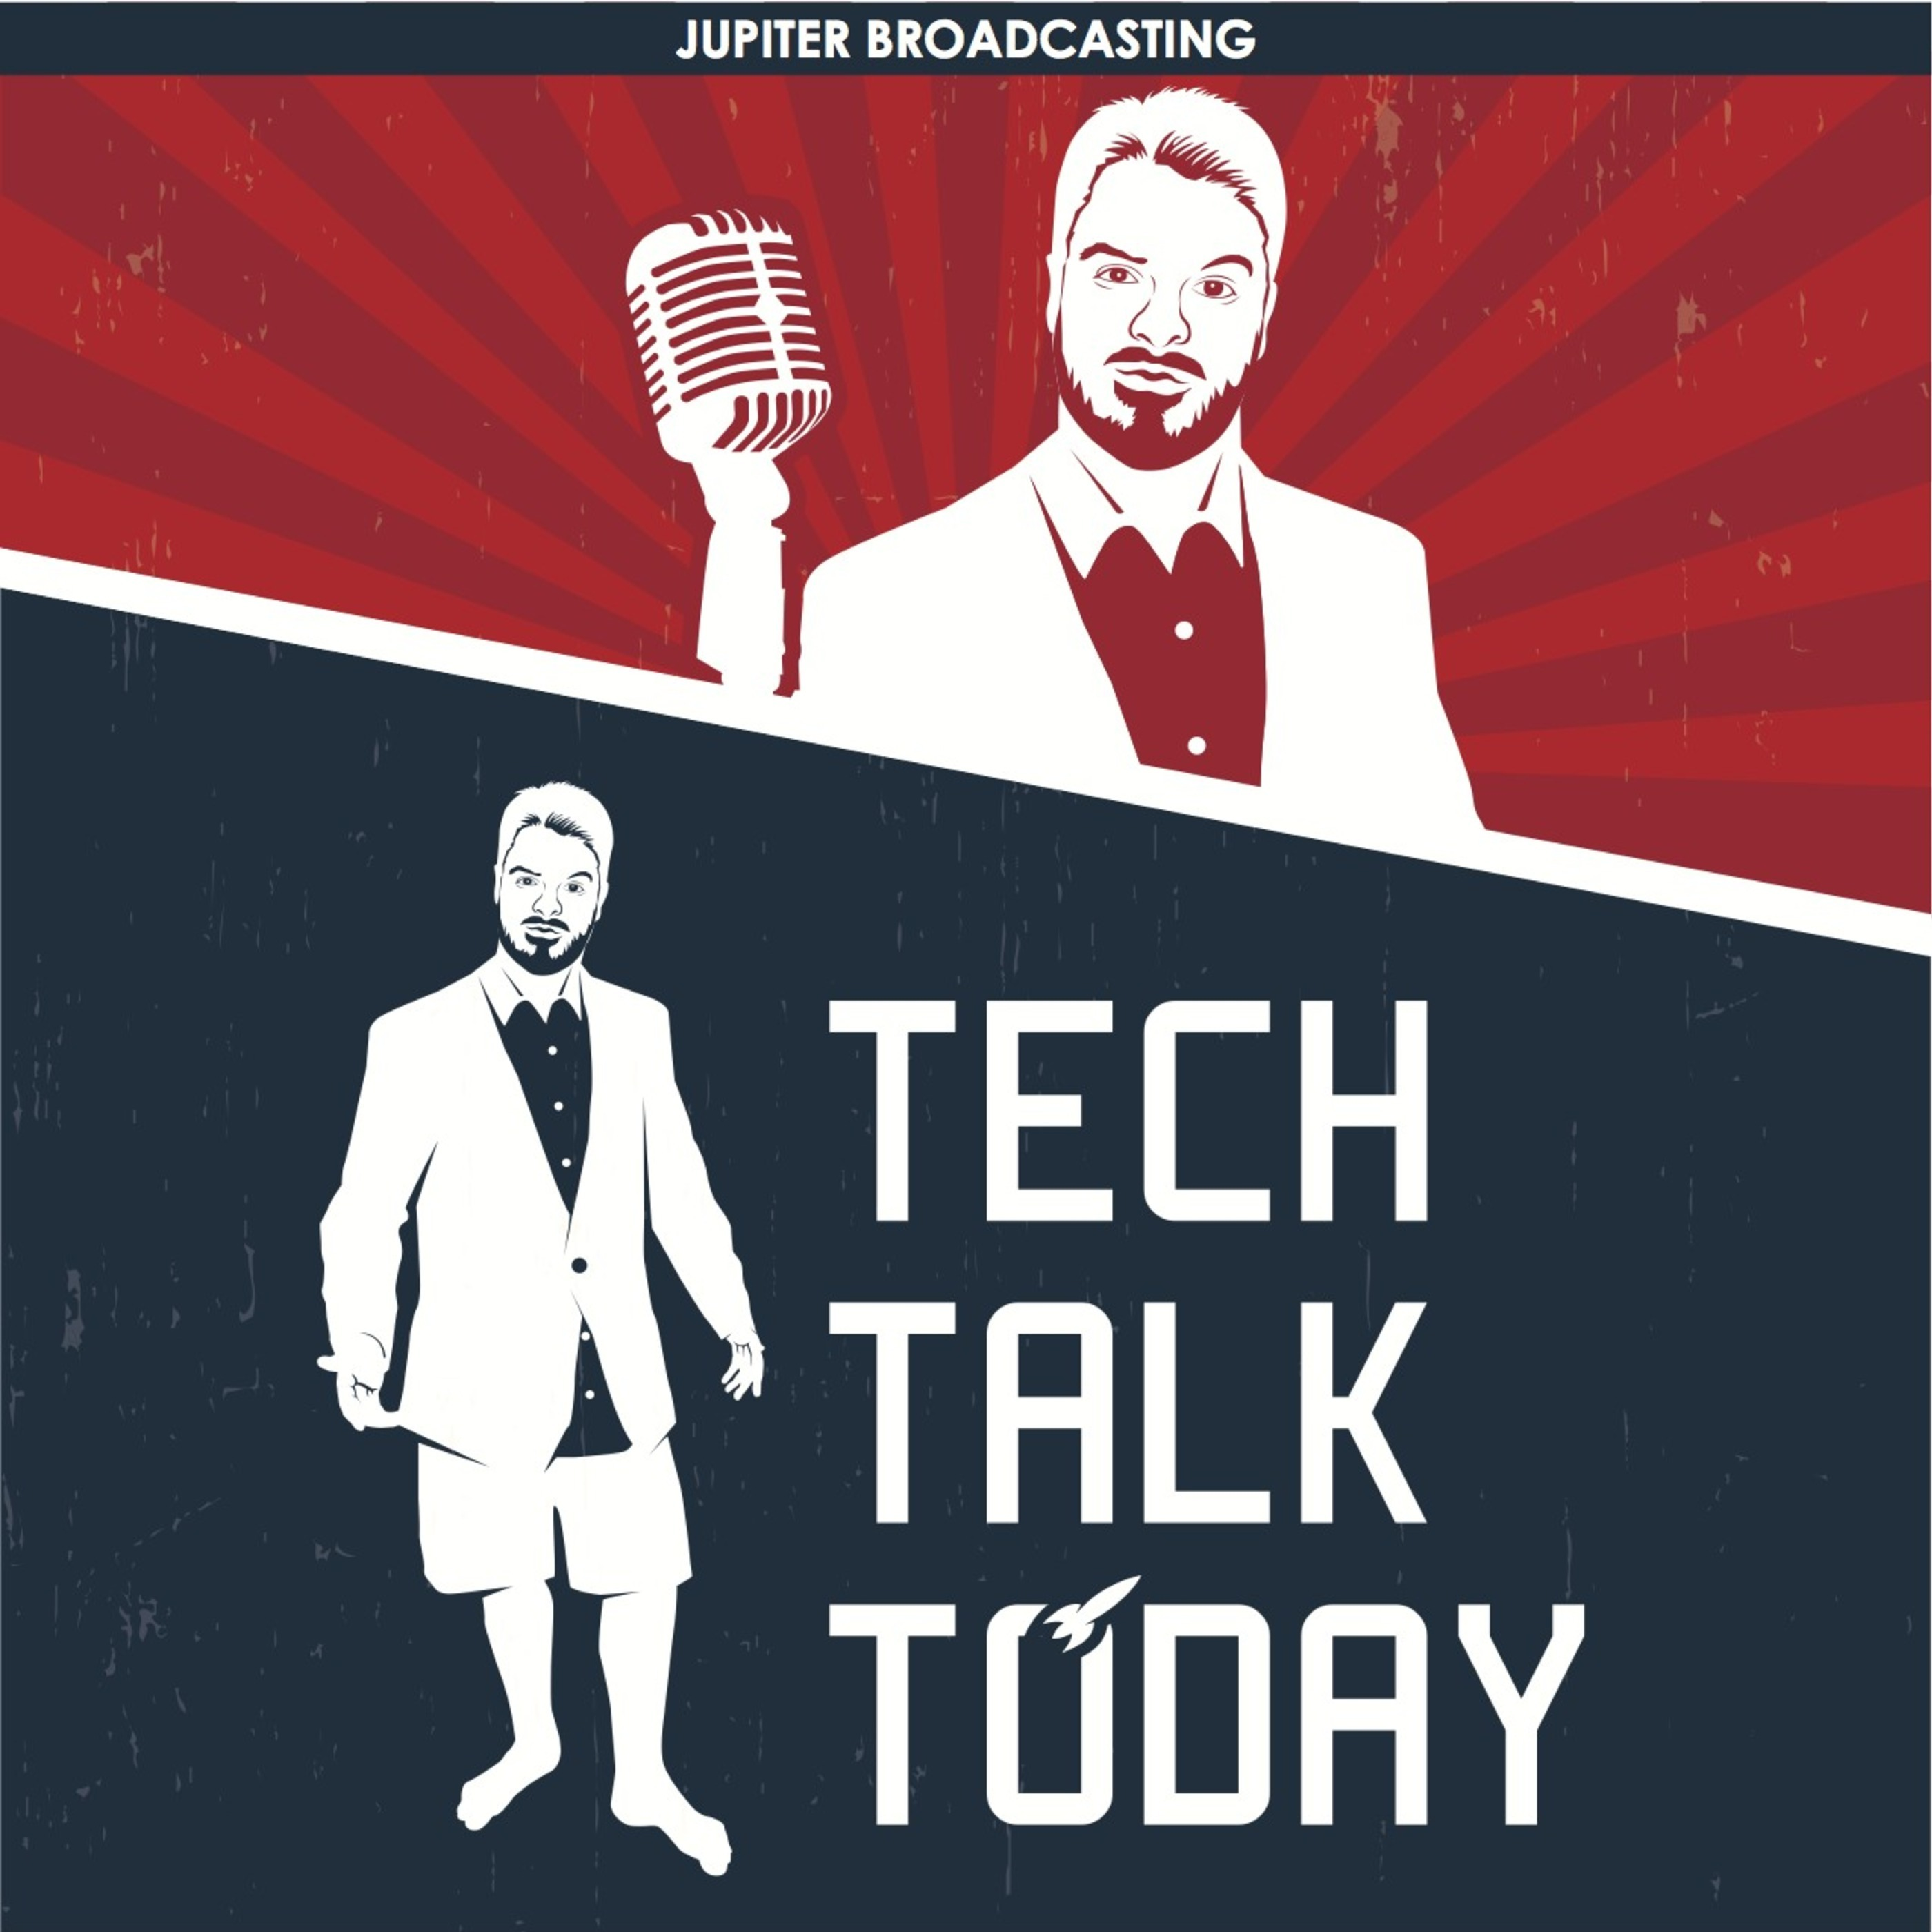 Episode 12: Microsoft BUILDs for Linux | Tech Talk Today 165